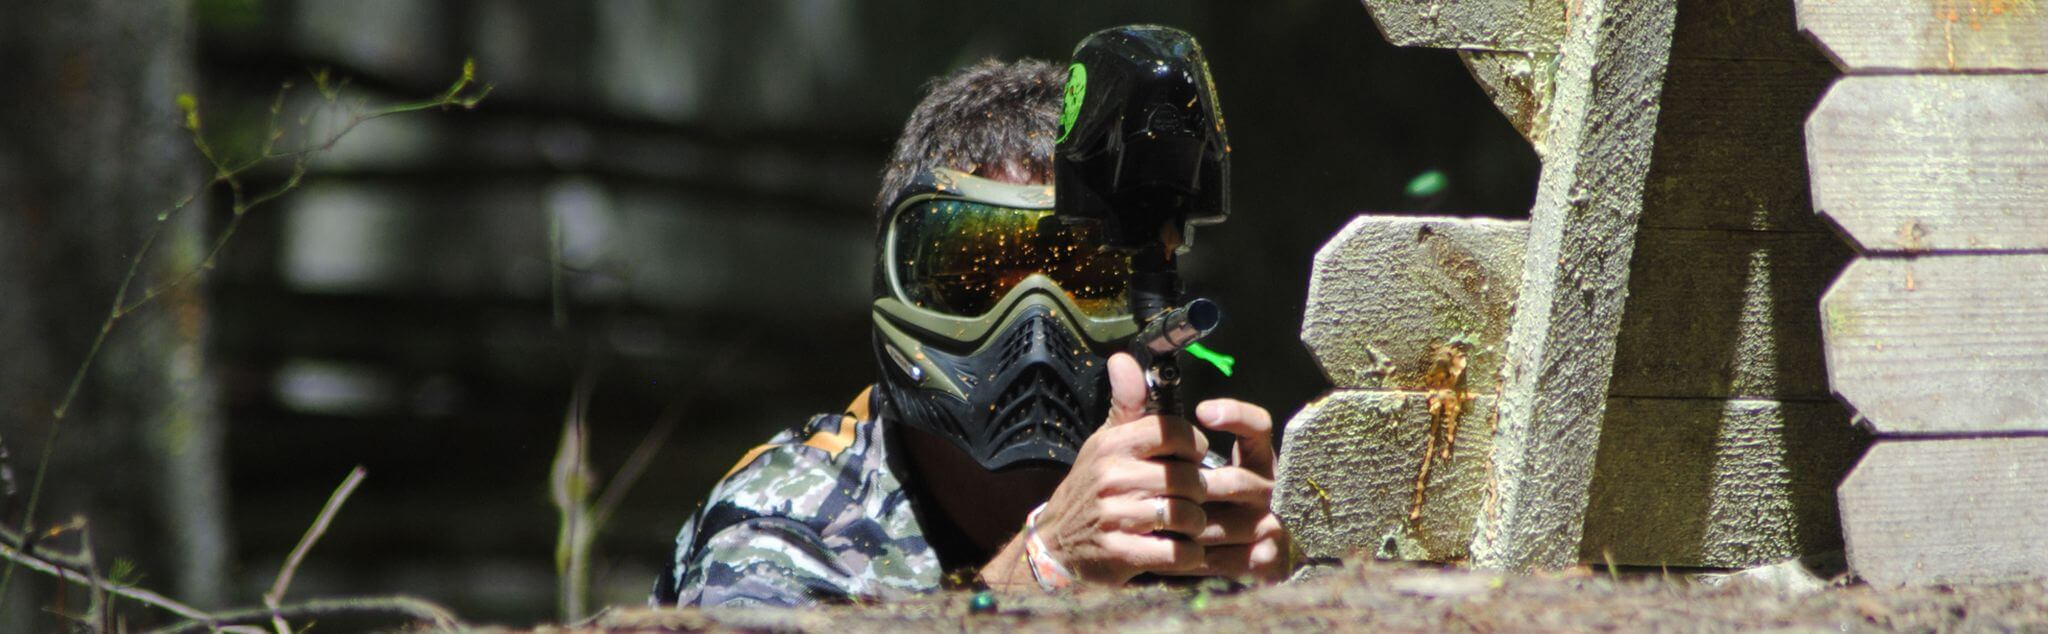 Paintball en Santa Barbara De Casa